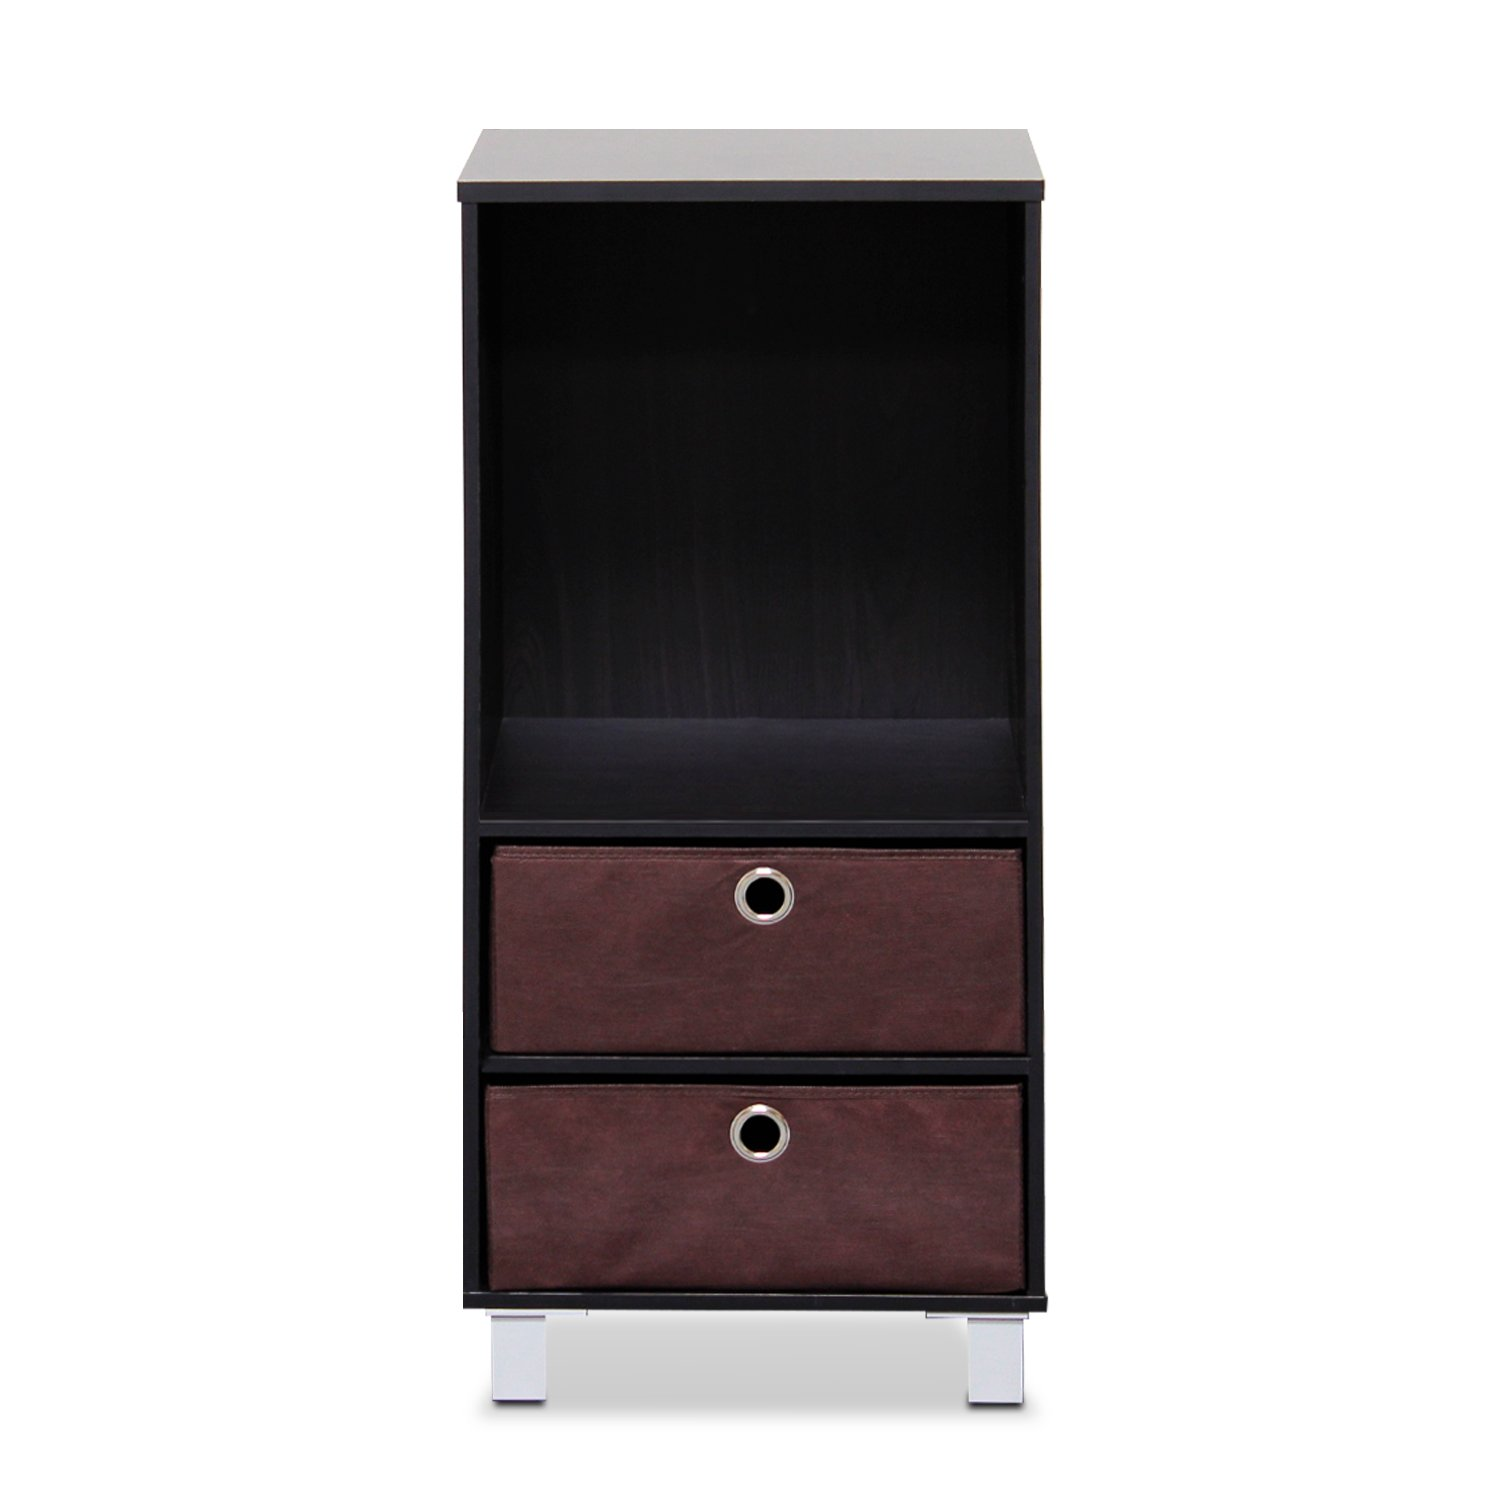 Furinno 10002EX/BR 3 Shelves Cabinet/Bedside Night Stand with 2 Bin Drawers, Espresso/Brown